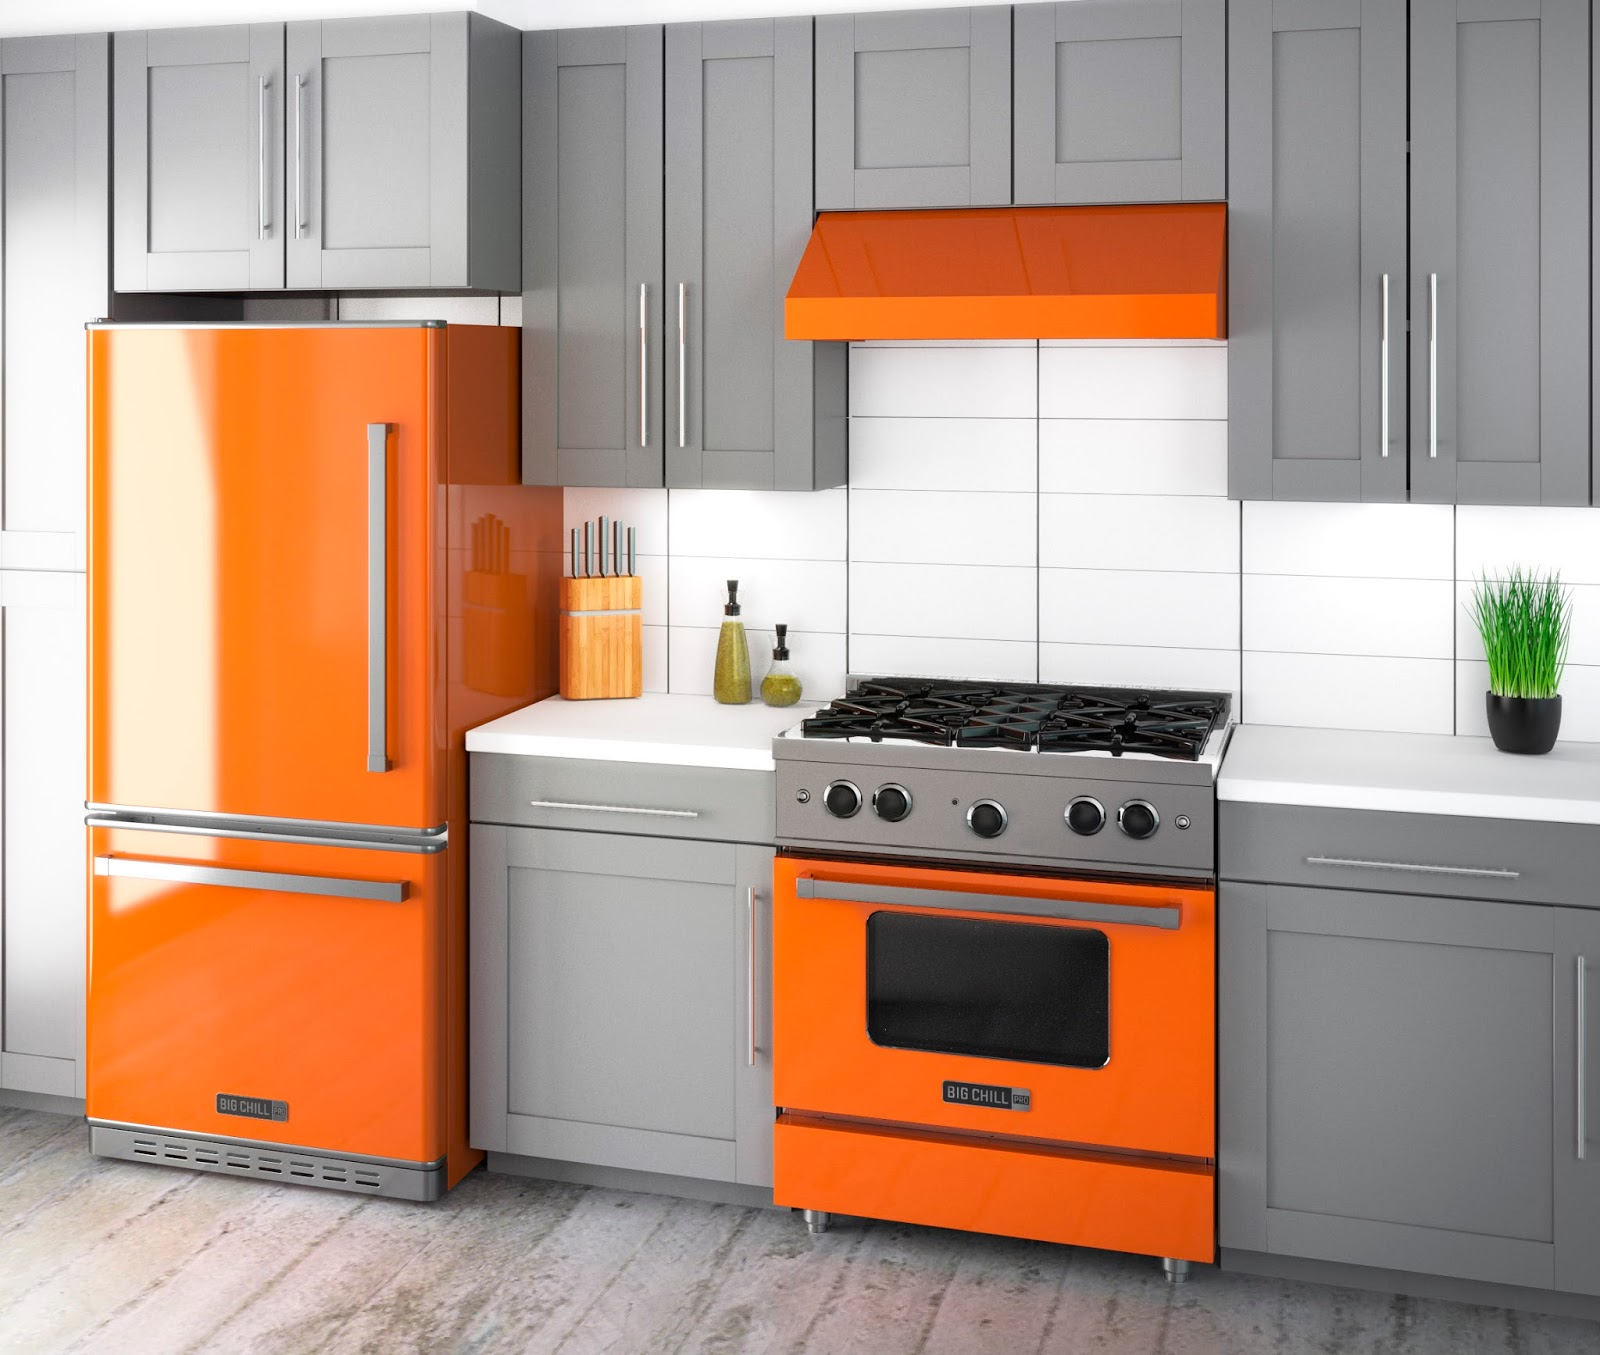 The most well known appliance of every family kitchen the refrigerator will always tell a story of its owners if we give it a close attention